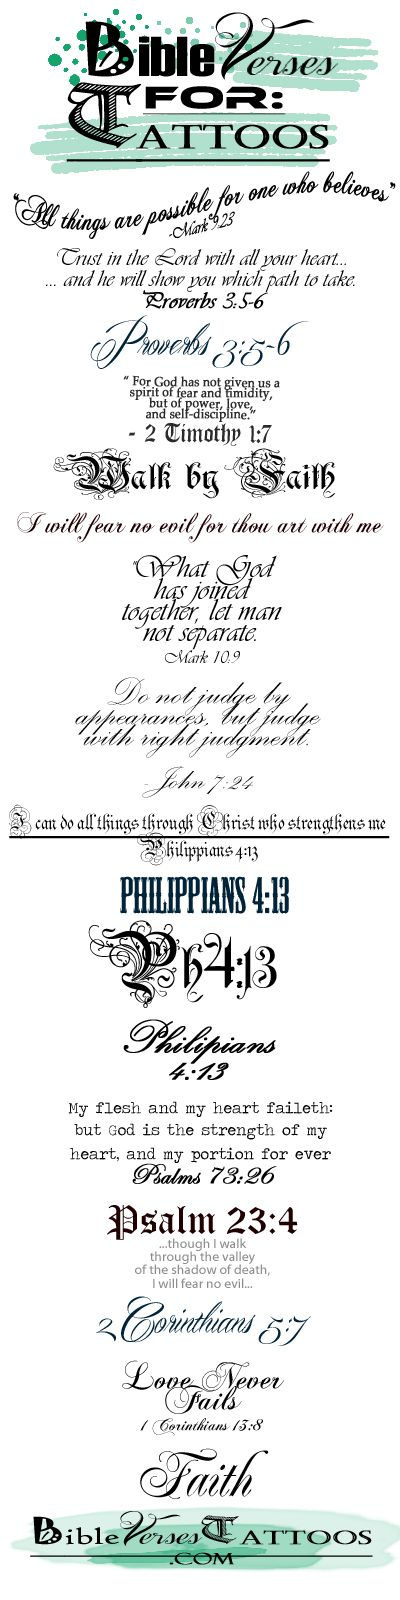 BiBLE VERSE TATTOOS - Download (Repin) the Best Bible Verses for Tattoos from: www.BibleVersesTattoos.com #bibleversetattoos #bibleversestattoos #bibletattoos